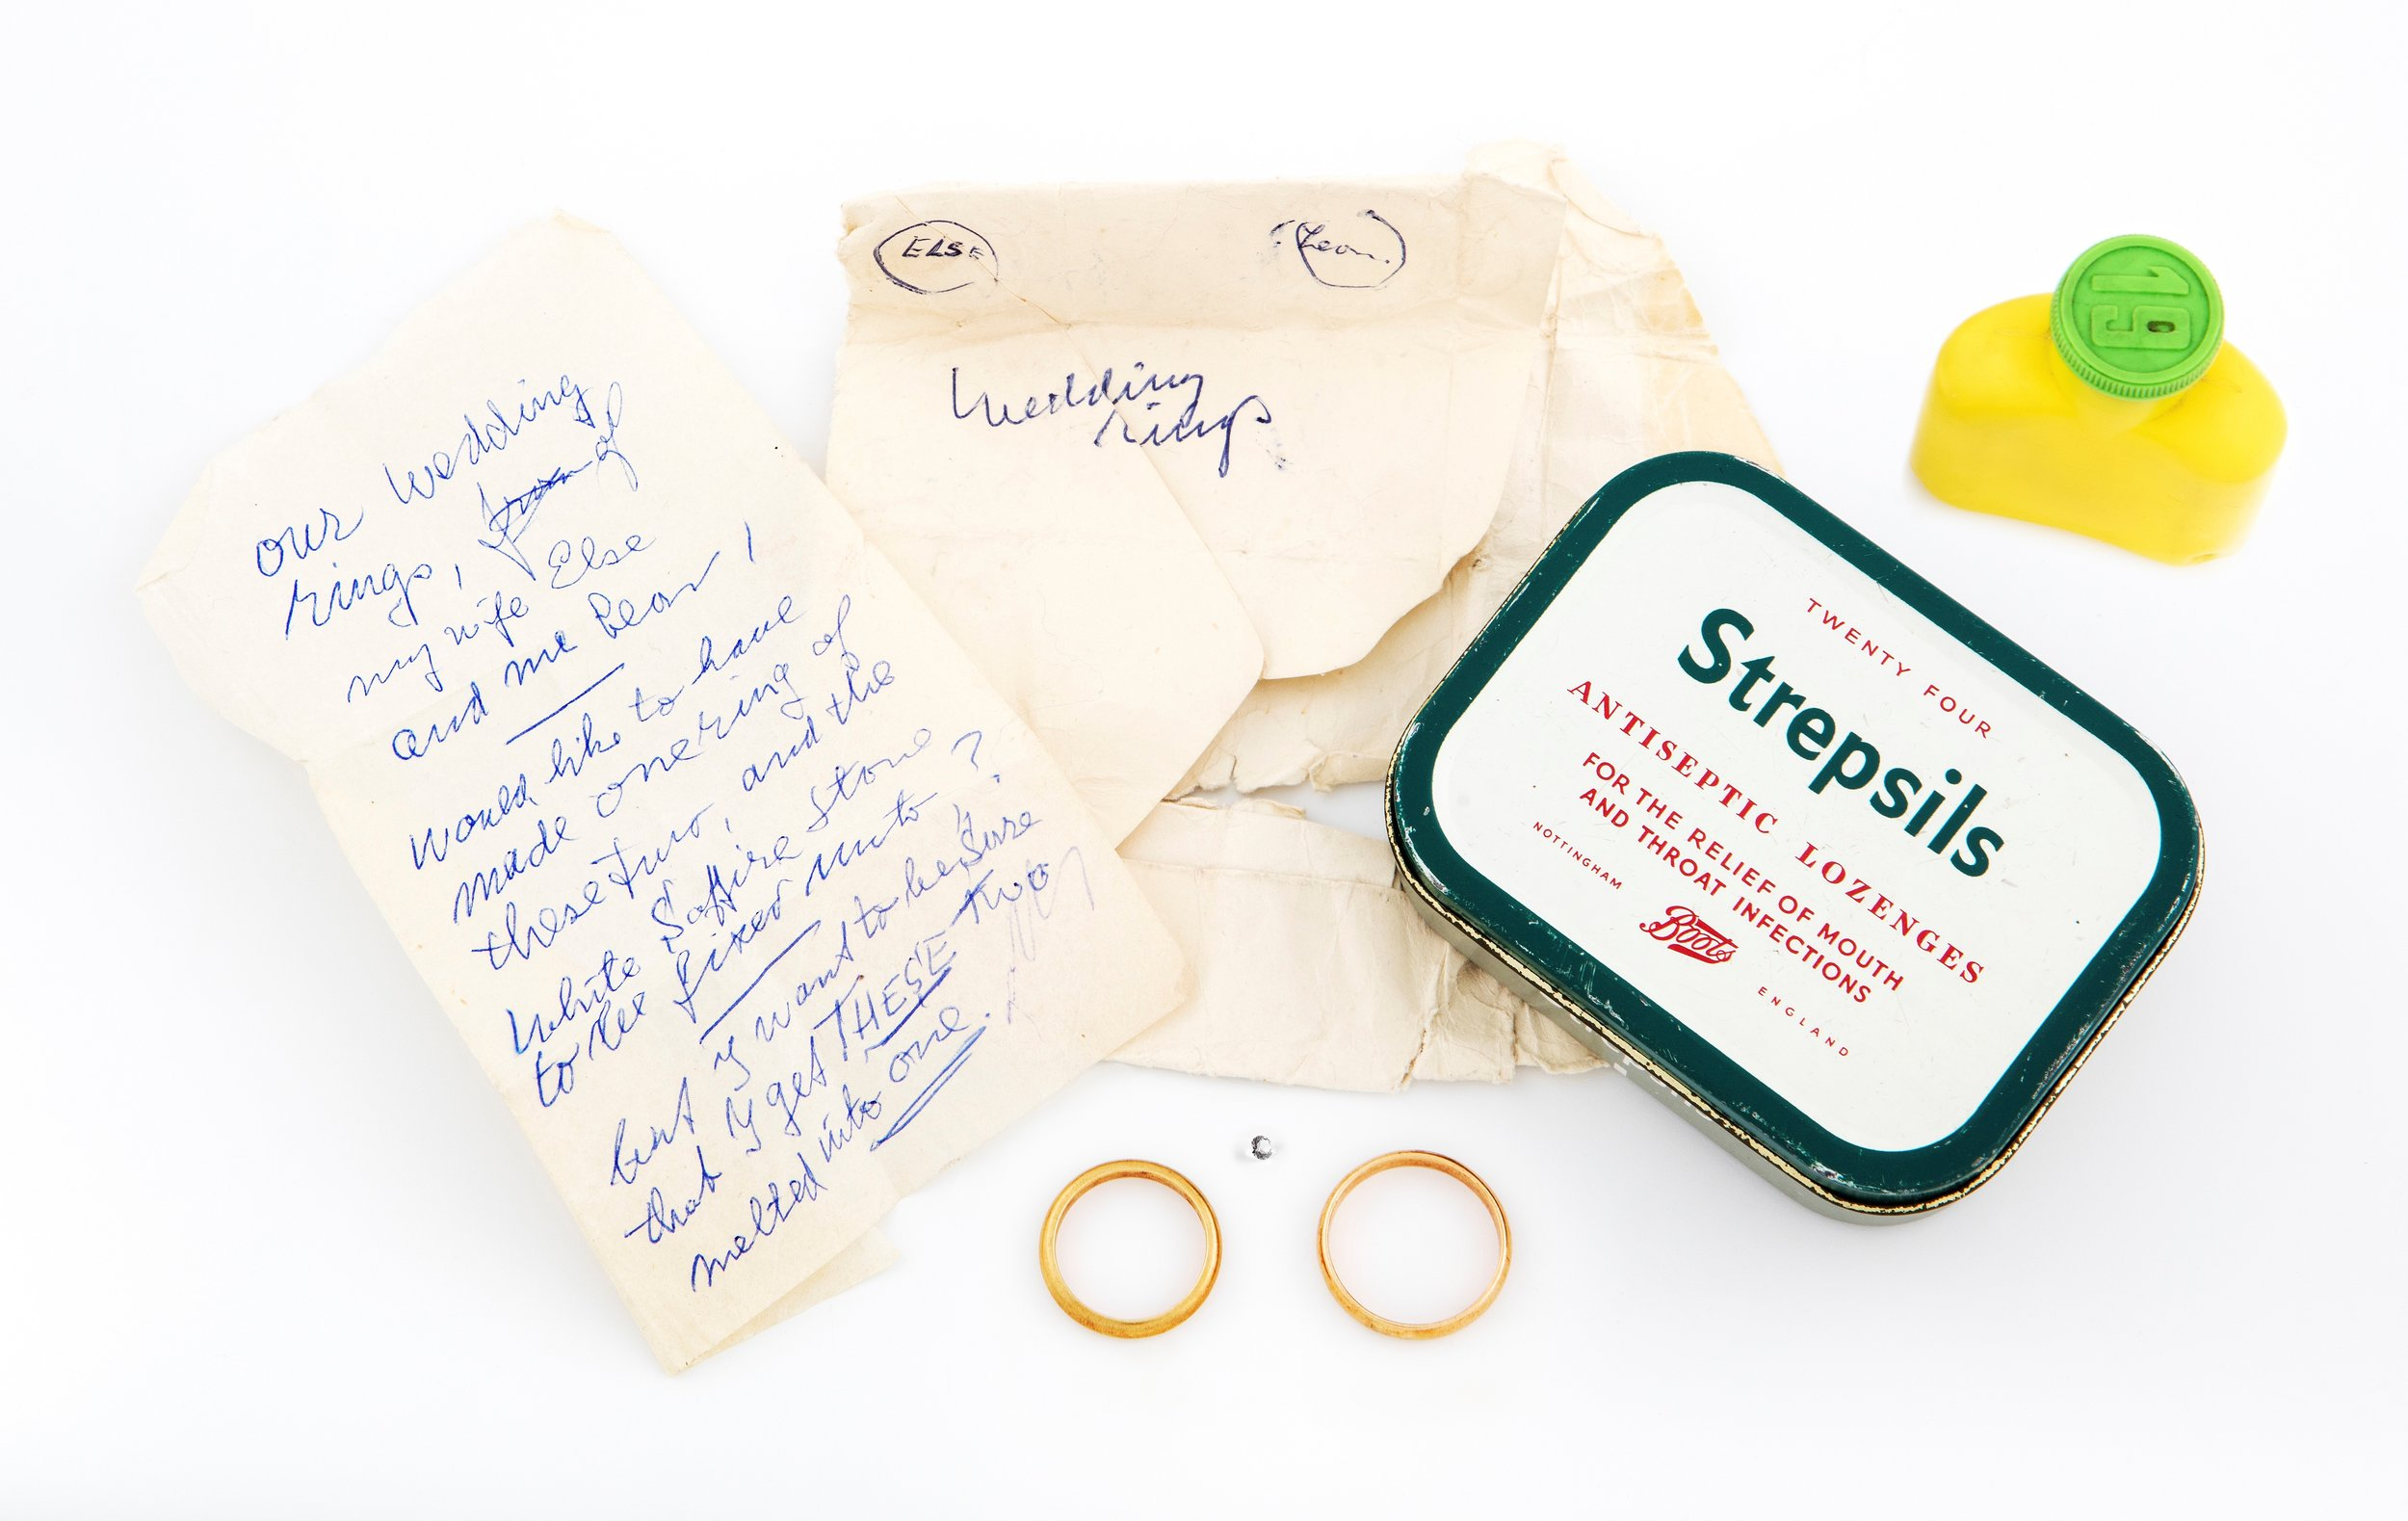 Greenman family and wedding rings, Ruth-Anne Lenga, UK (personal collection)